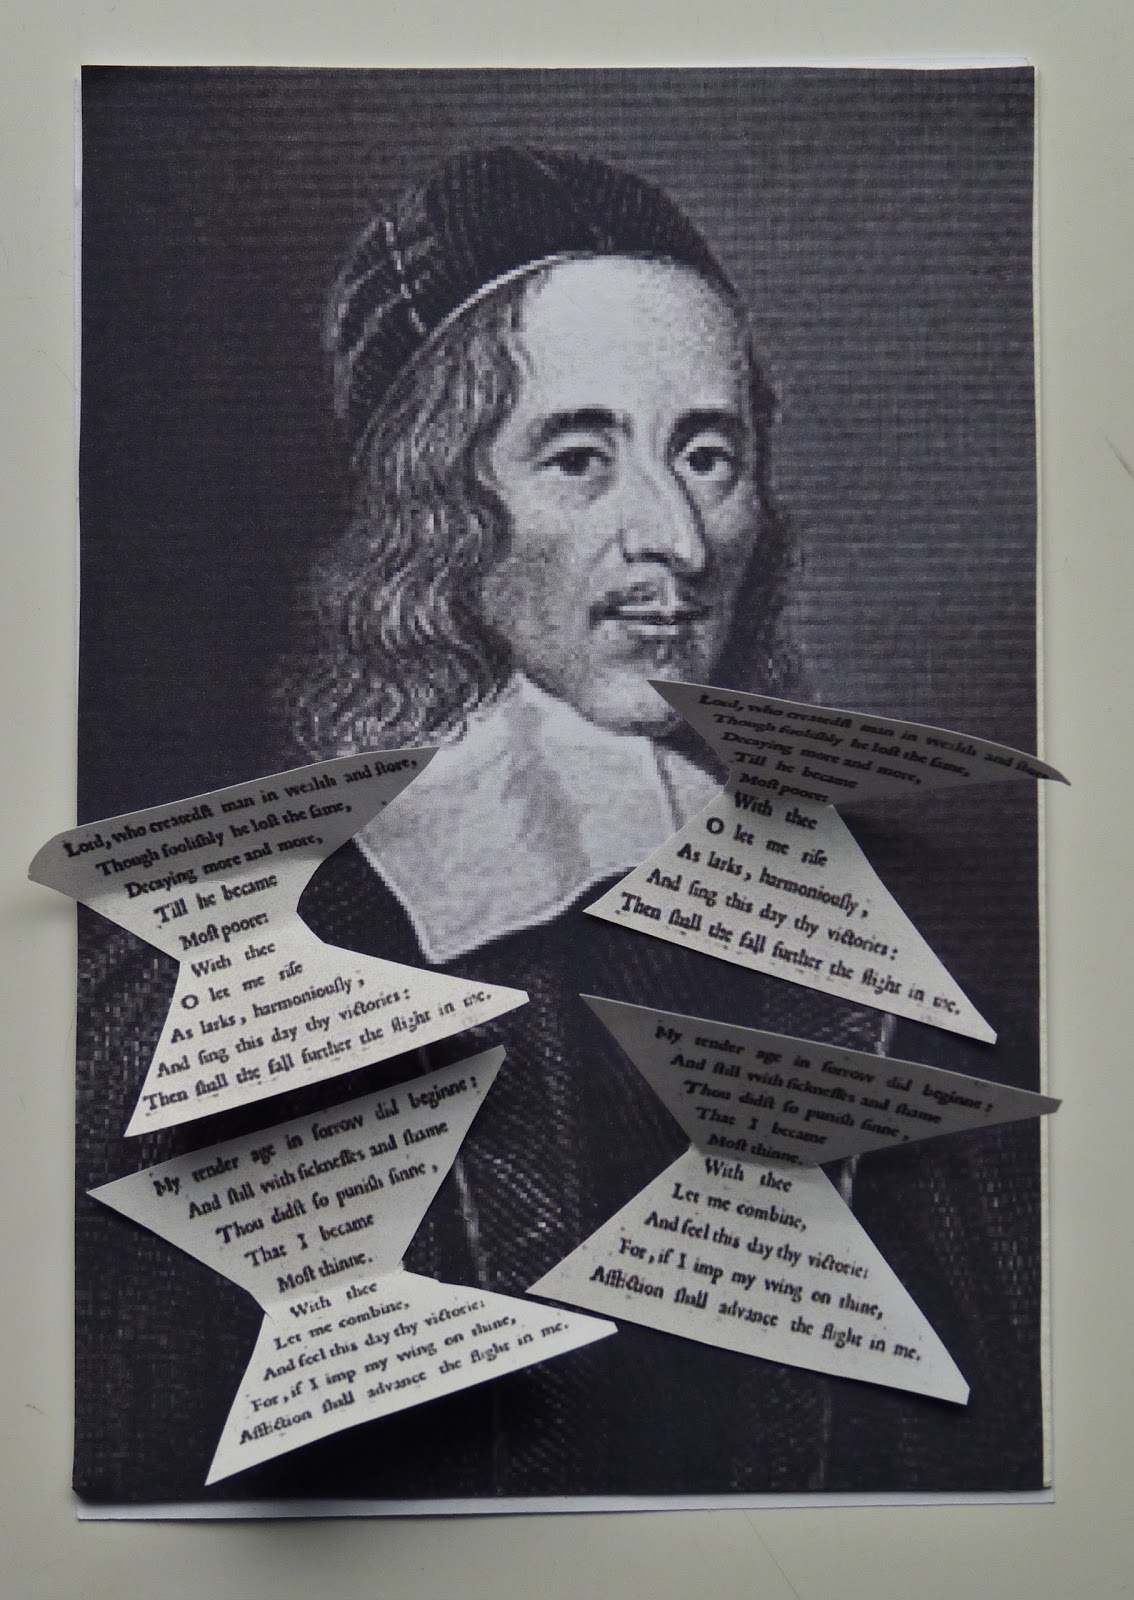 a literary analysis of easter wings by george herbert Unlike most editing & proofreading services, we edit for everything: grammar, spelling, punctuation, idea flow, sentence structure, & more get started now.